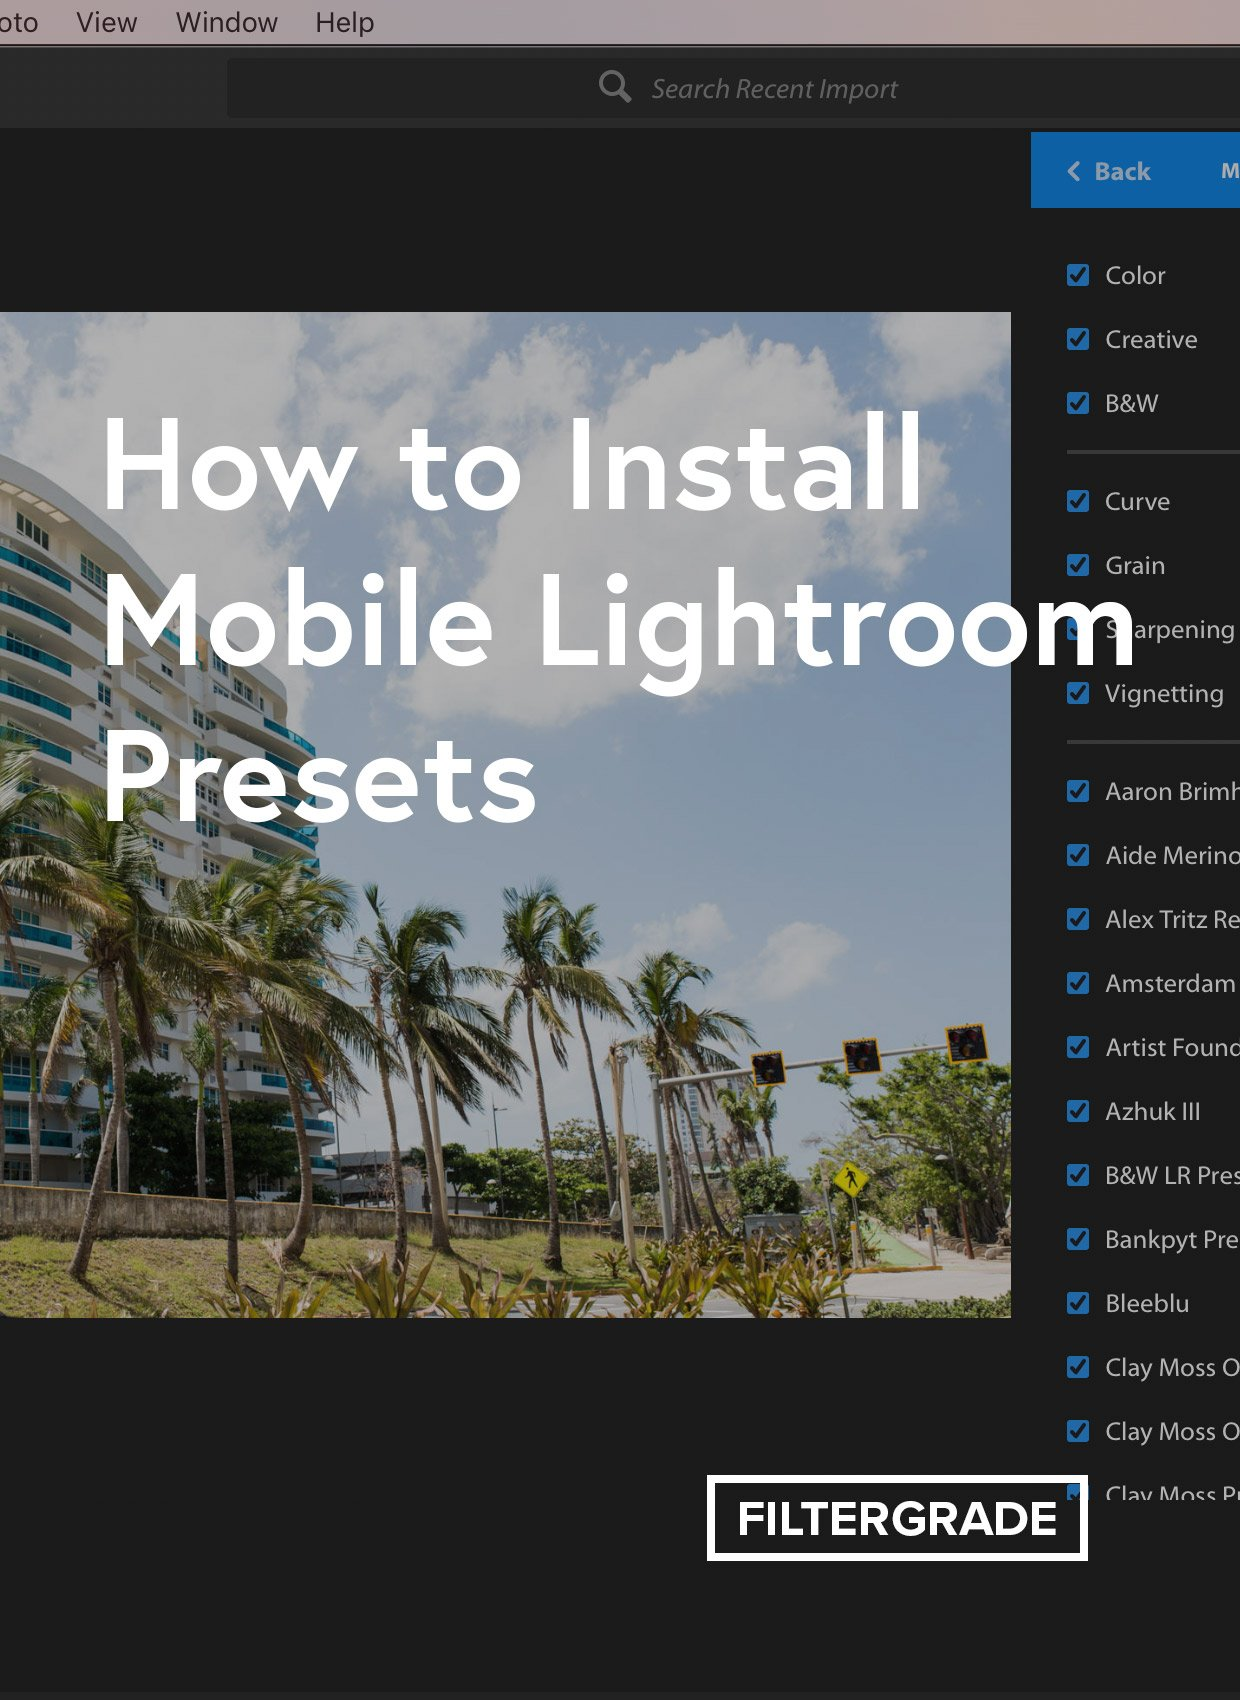 How to Sync Presets from Lightroom Classic to Lightroom CC